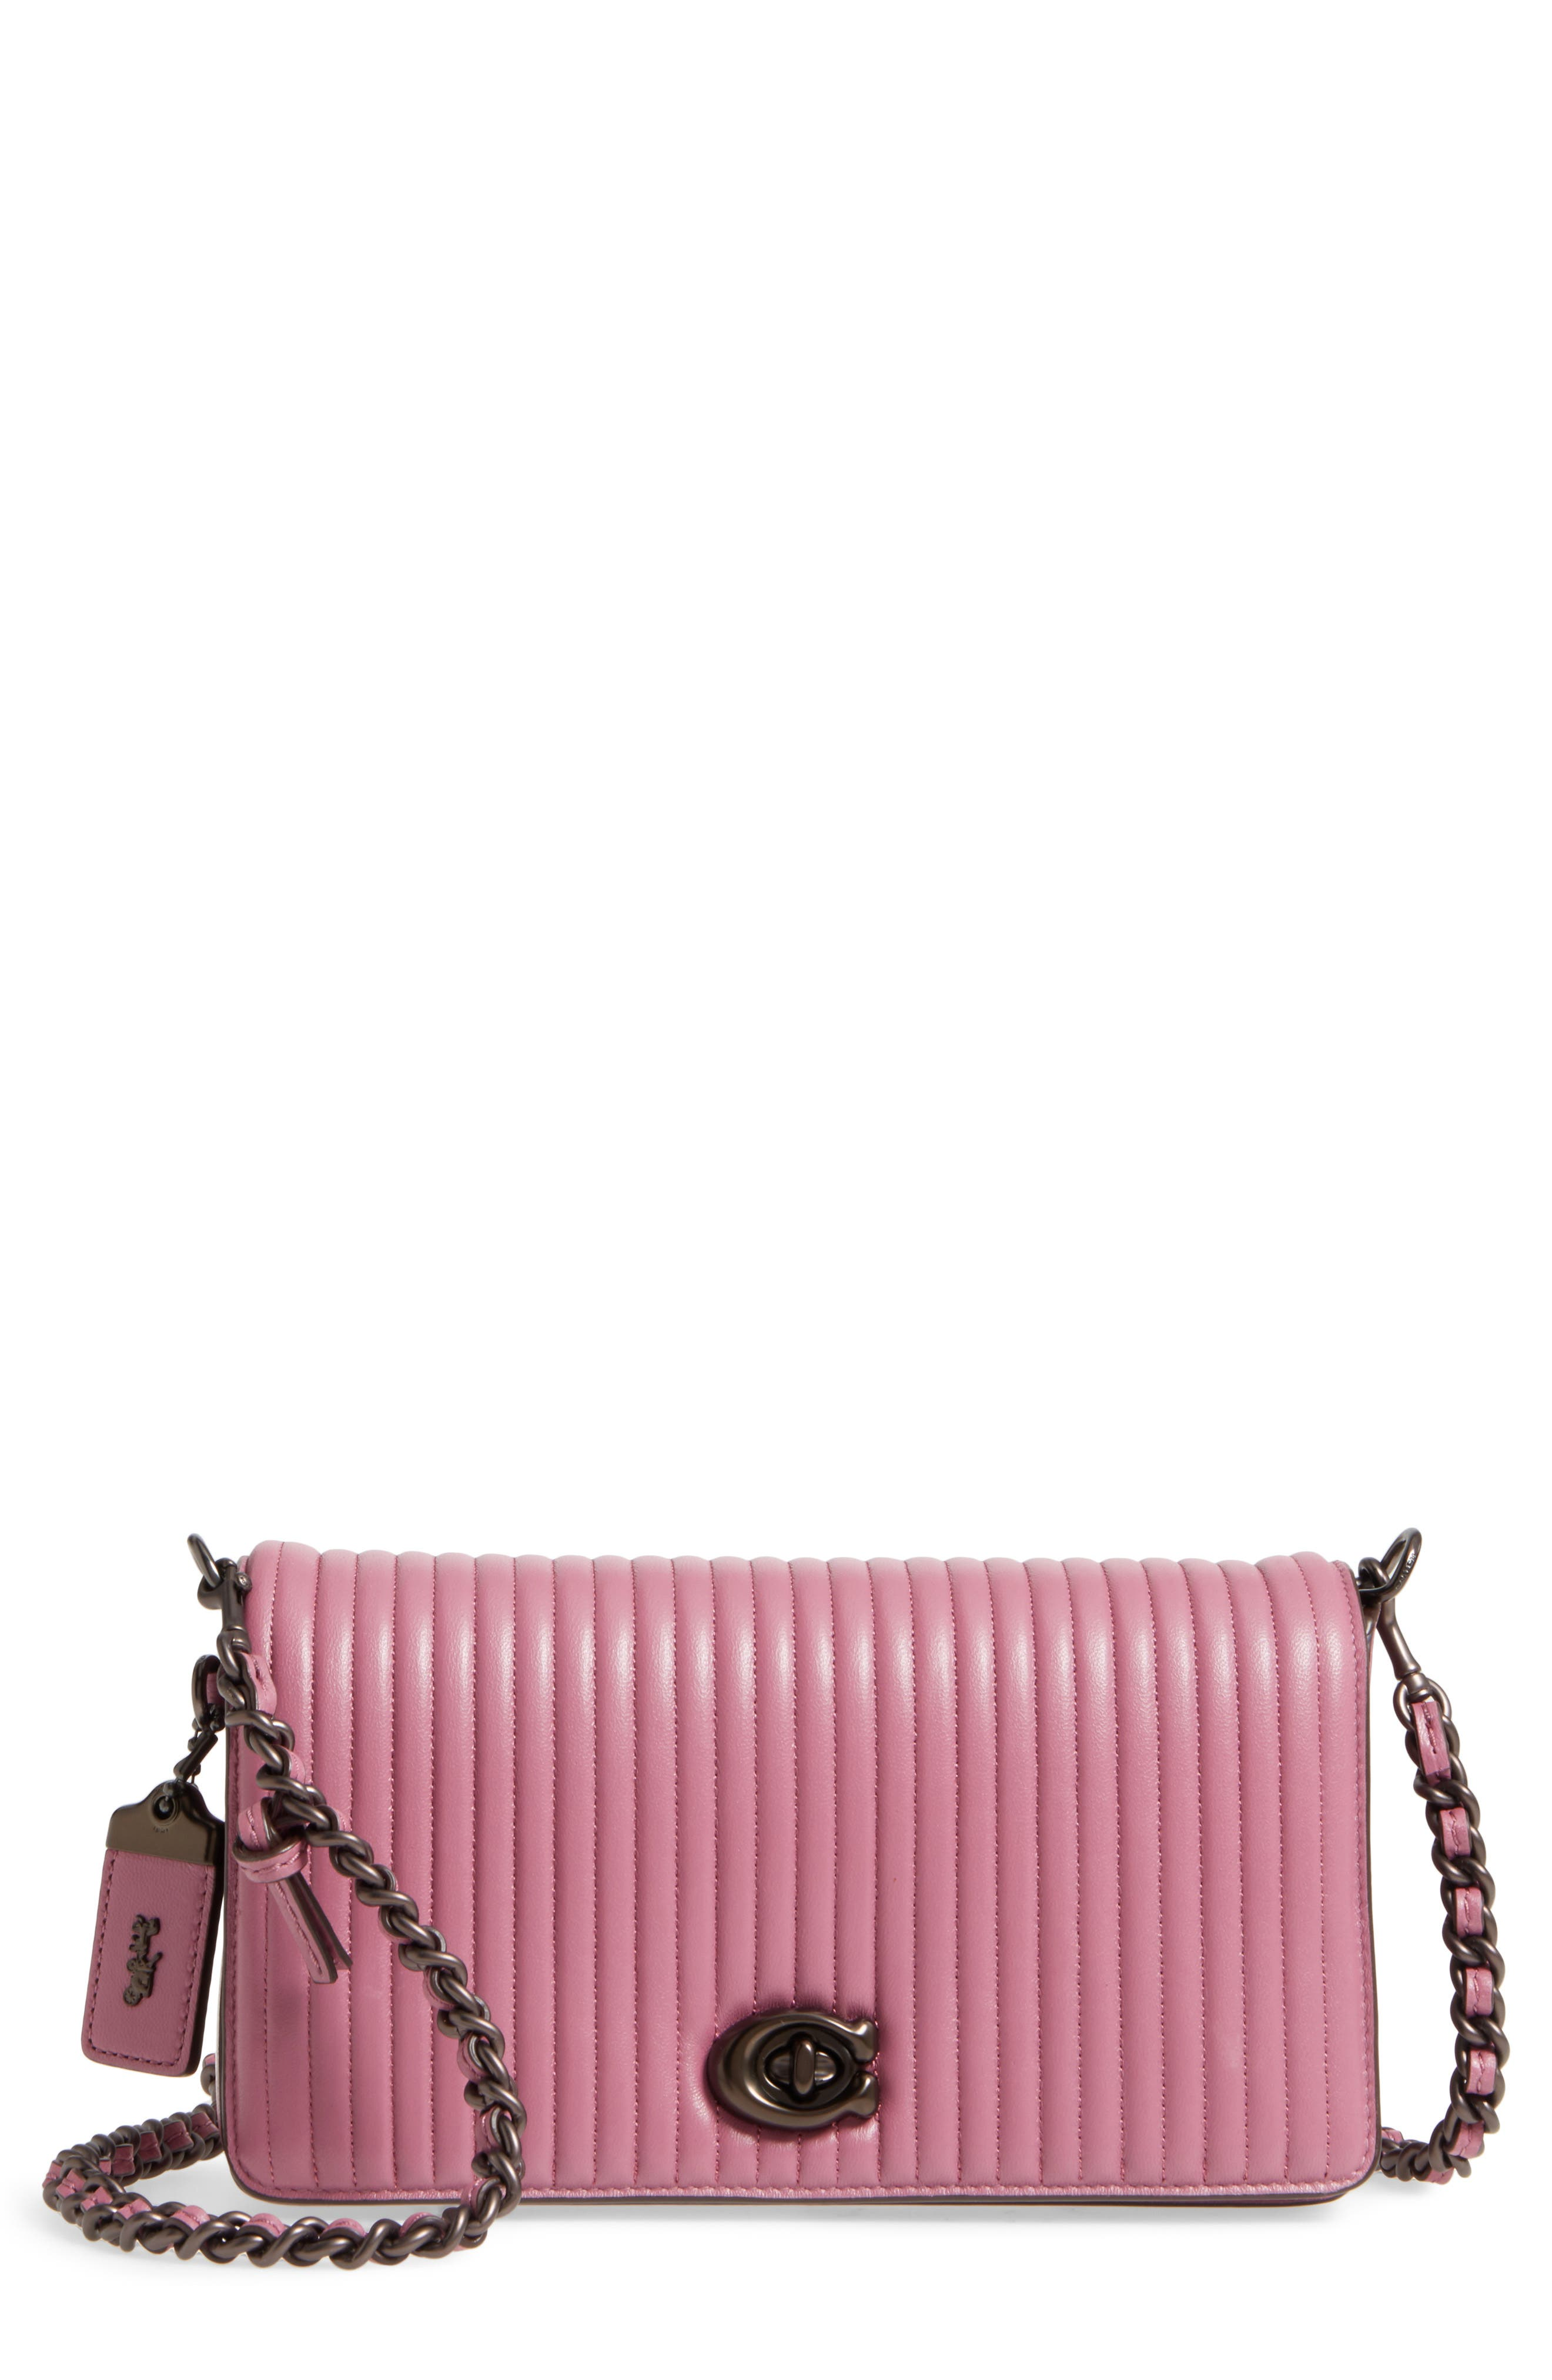 COACH 1941 Dinky Quilted Leather Crossbody Bag